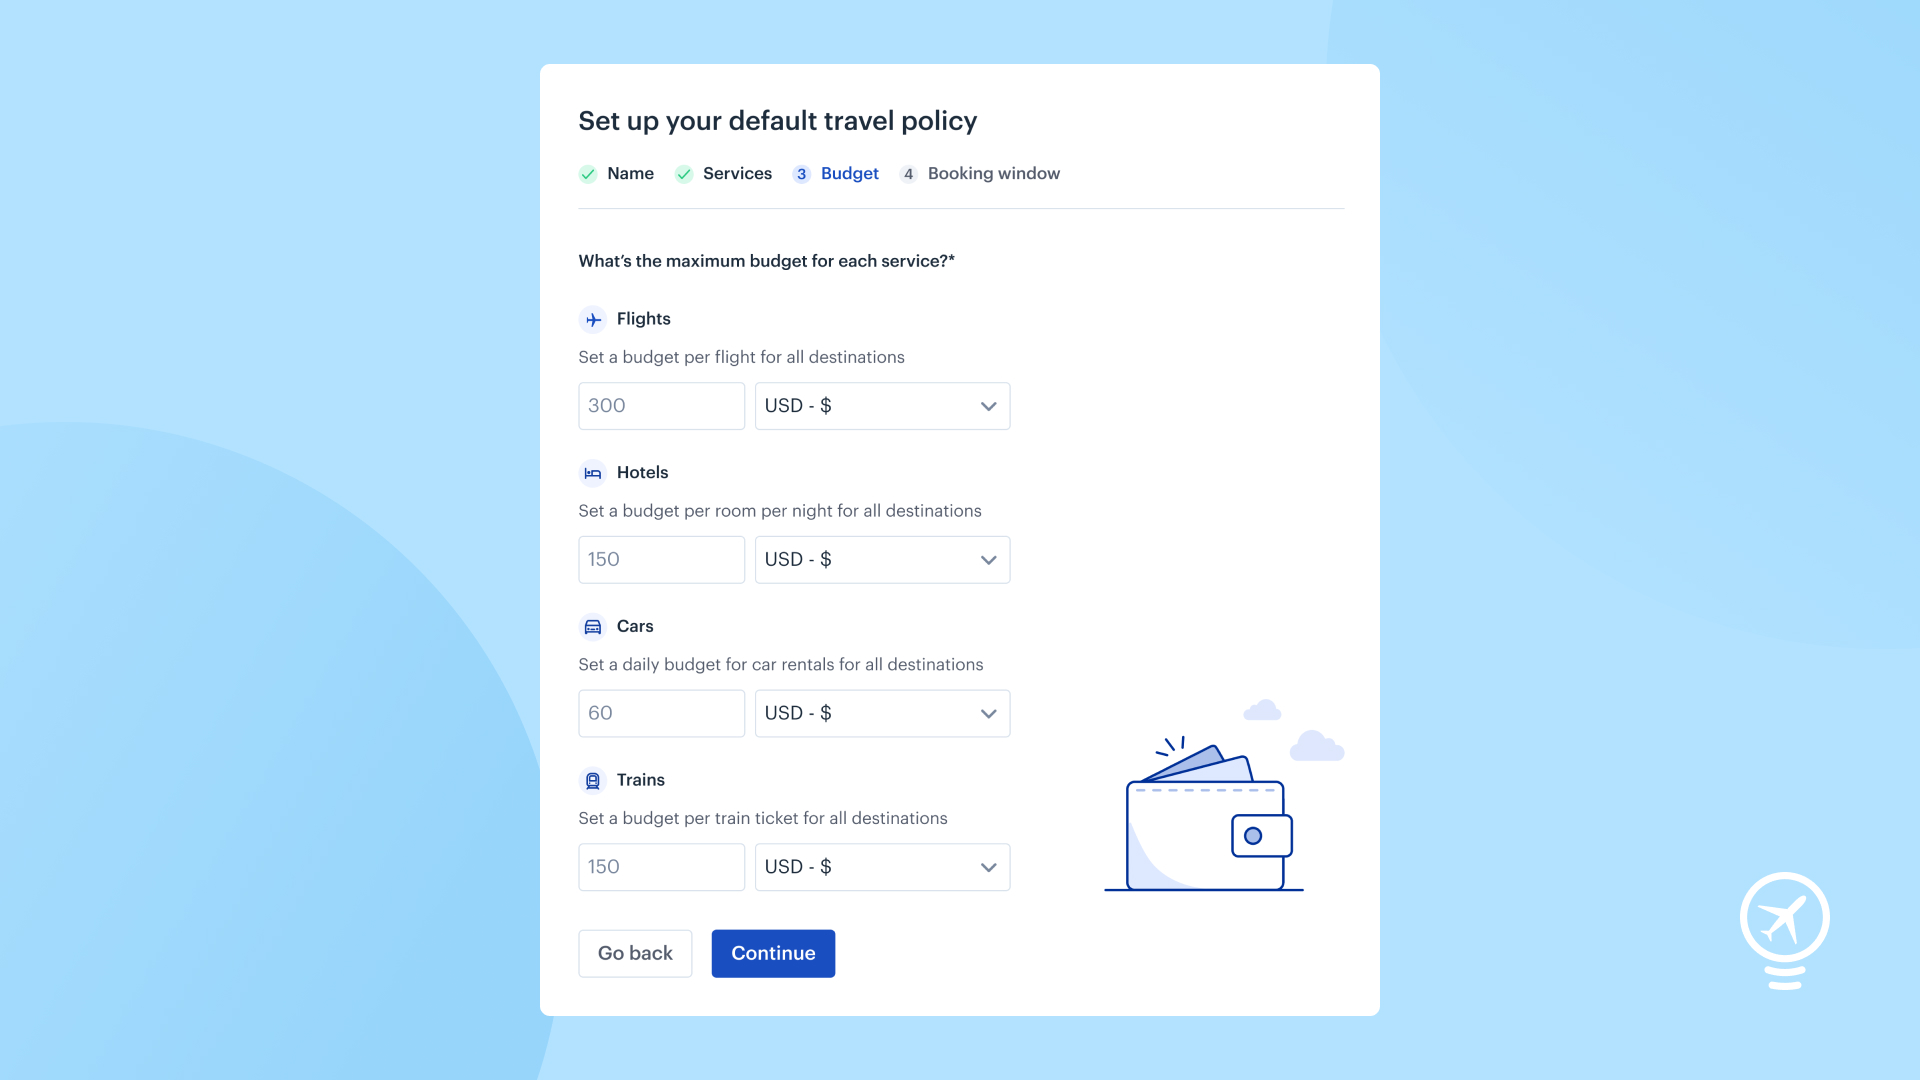 Easily set up Travel Policies for your company, making it simple to follow and stick to, and you too can benefit from around 90% compliance, like other companies using TravelPerk.